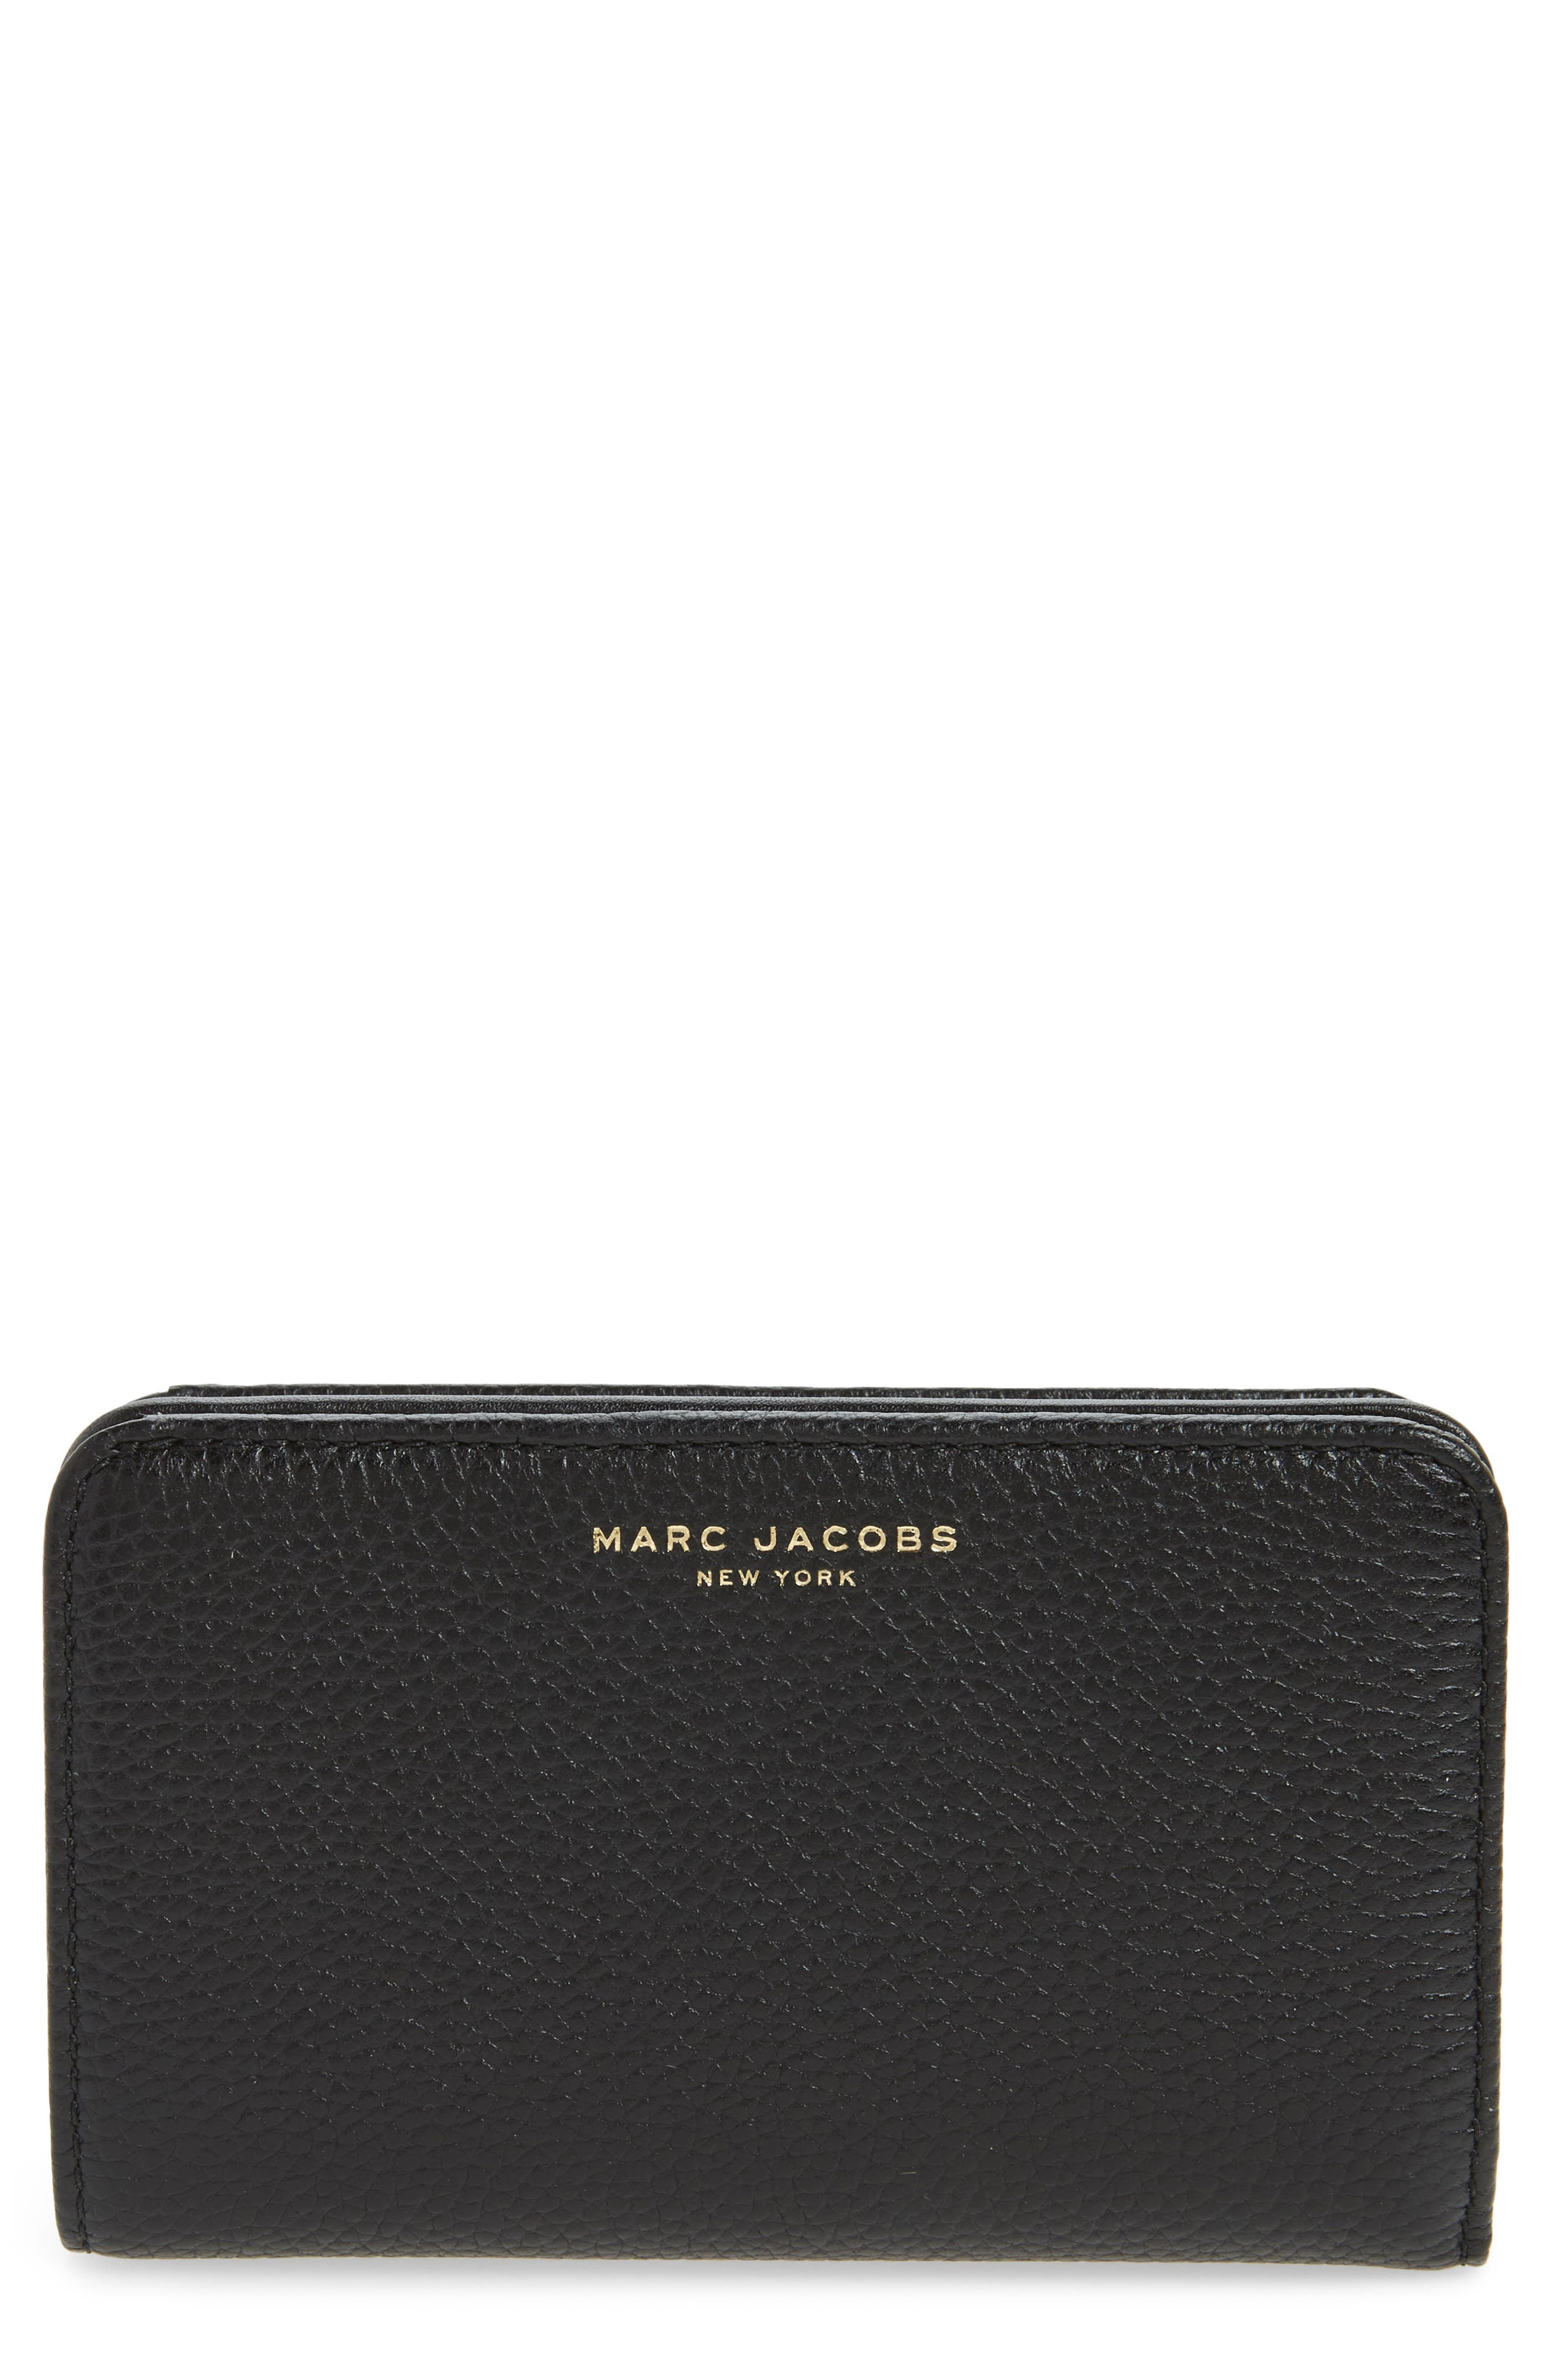 Main Image - MARC JACOBS Gotham Compact Leather Wallet